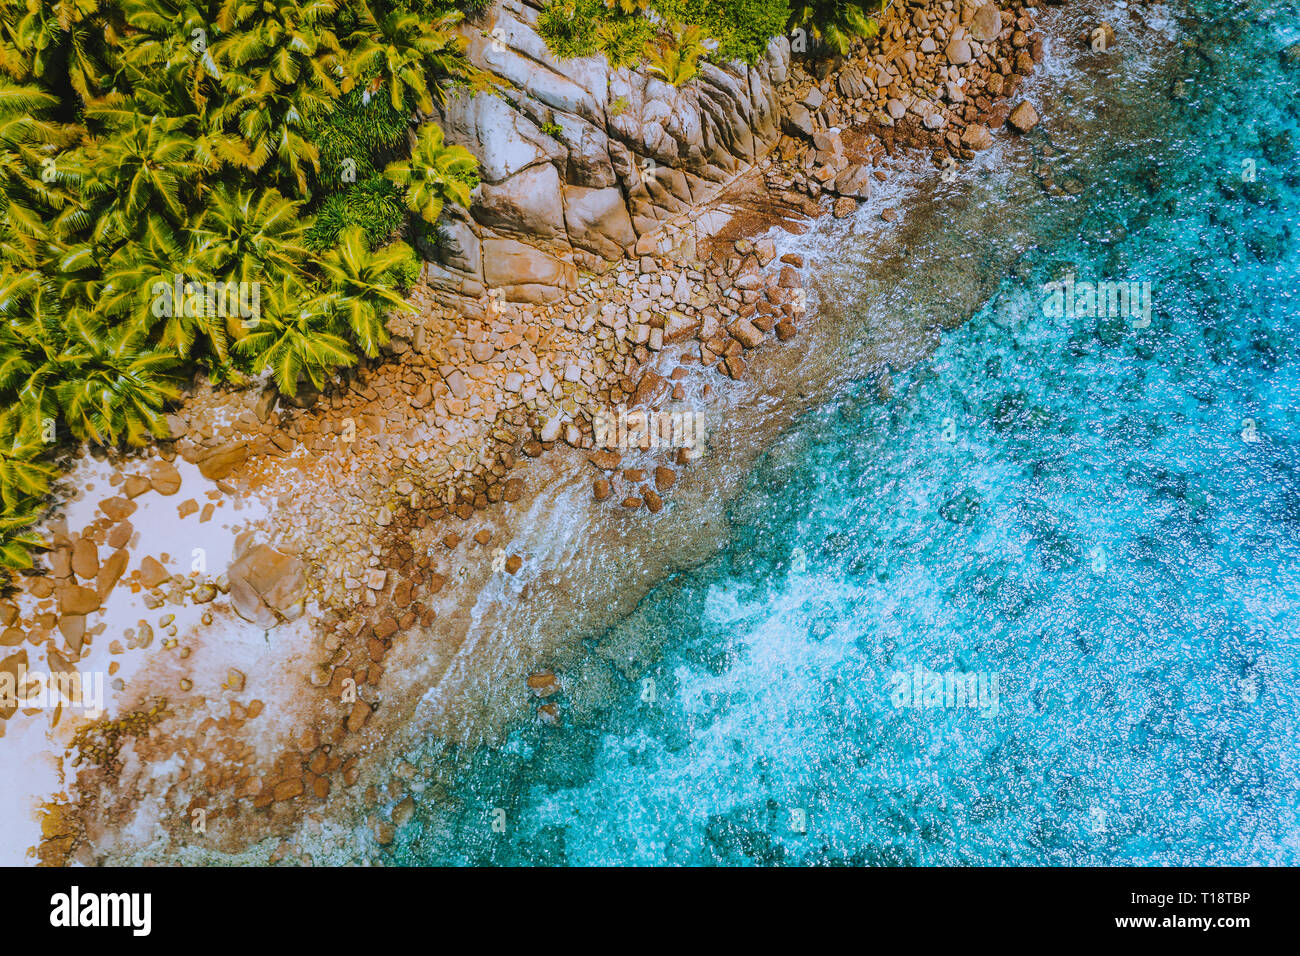 Aerial drone helicopter view of crystal clear turquoise water and amazing granite rocks. La Digue Island Seychelles - Stock Image